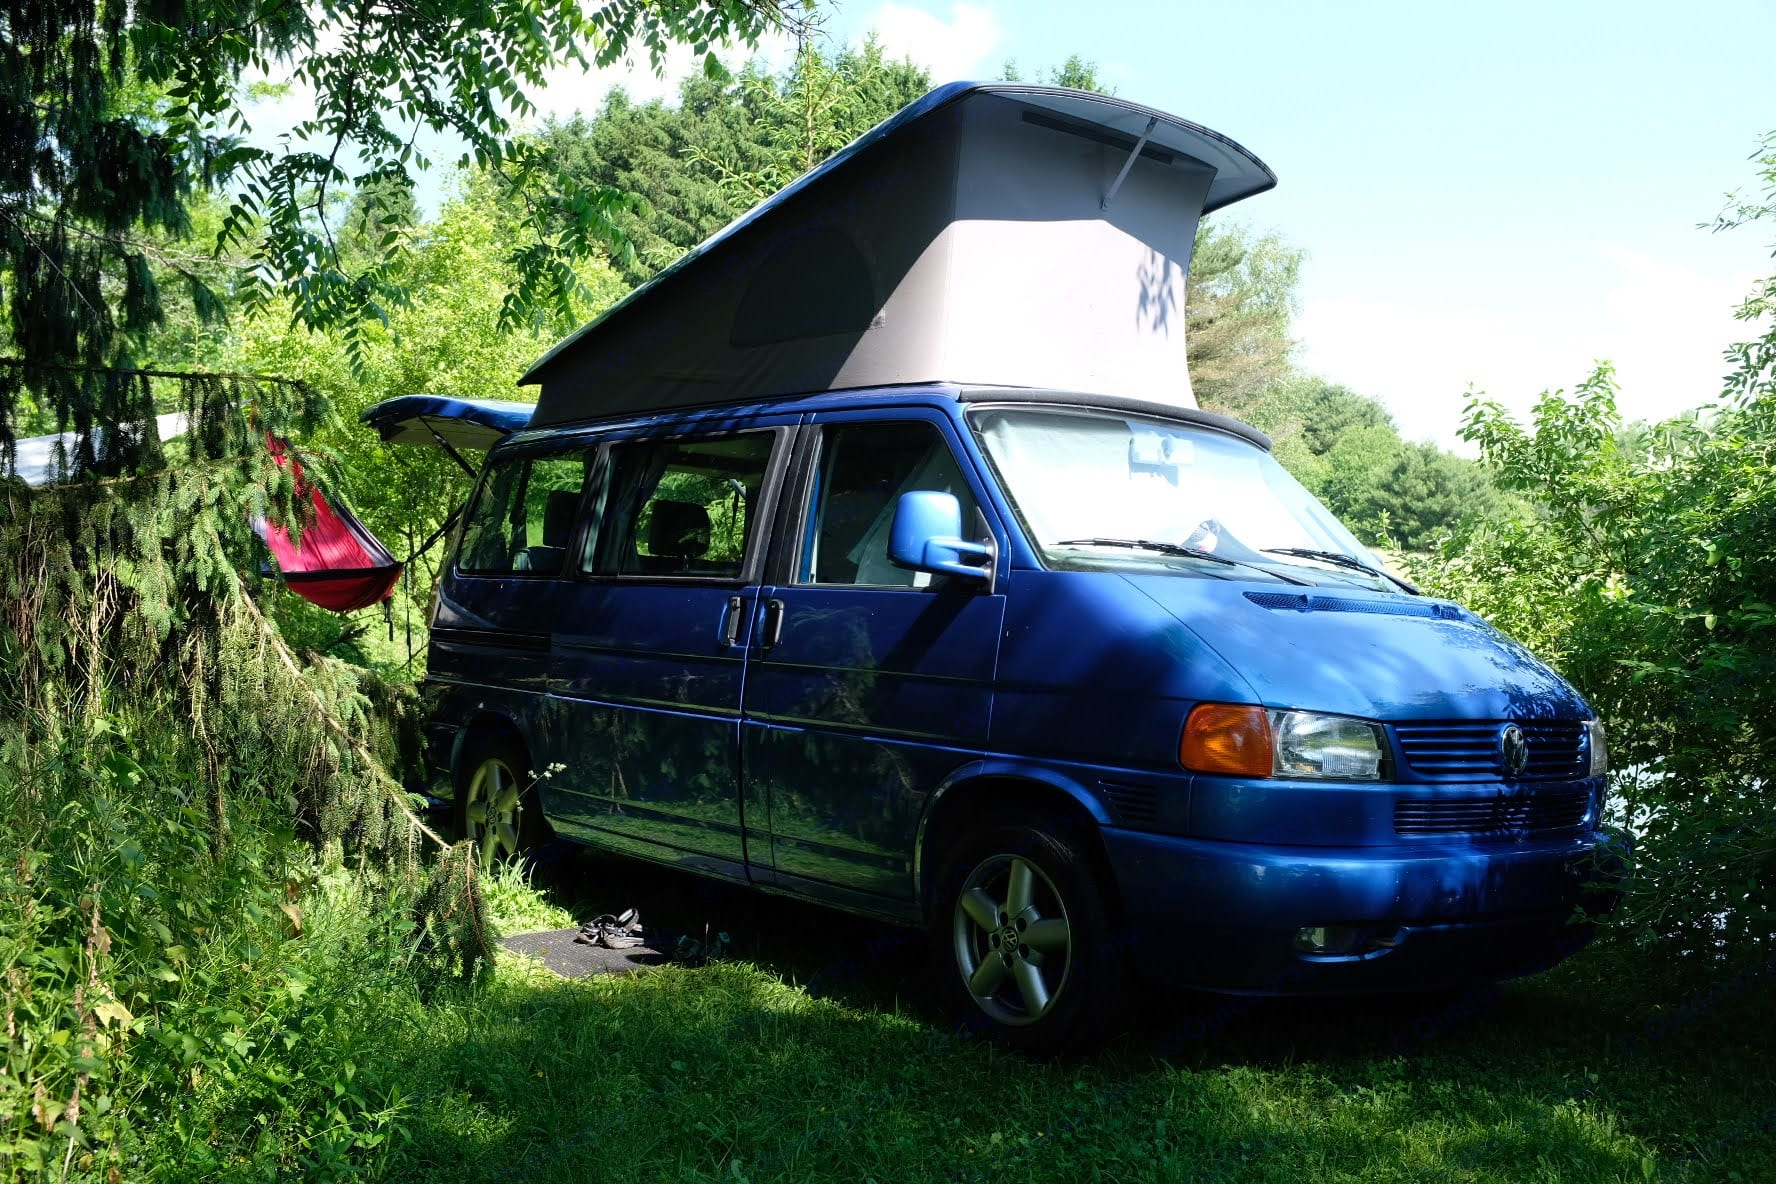 Camping at a great Hipcamp site in Upstate New York.. Volkswagen Eurovan Westfalia 2002